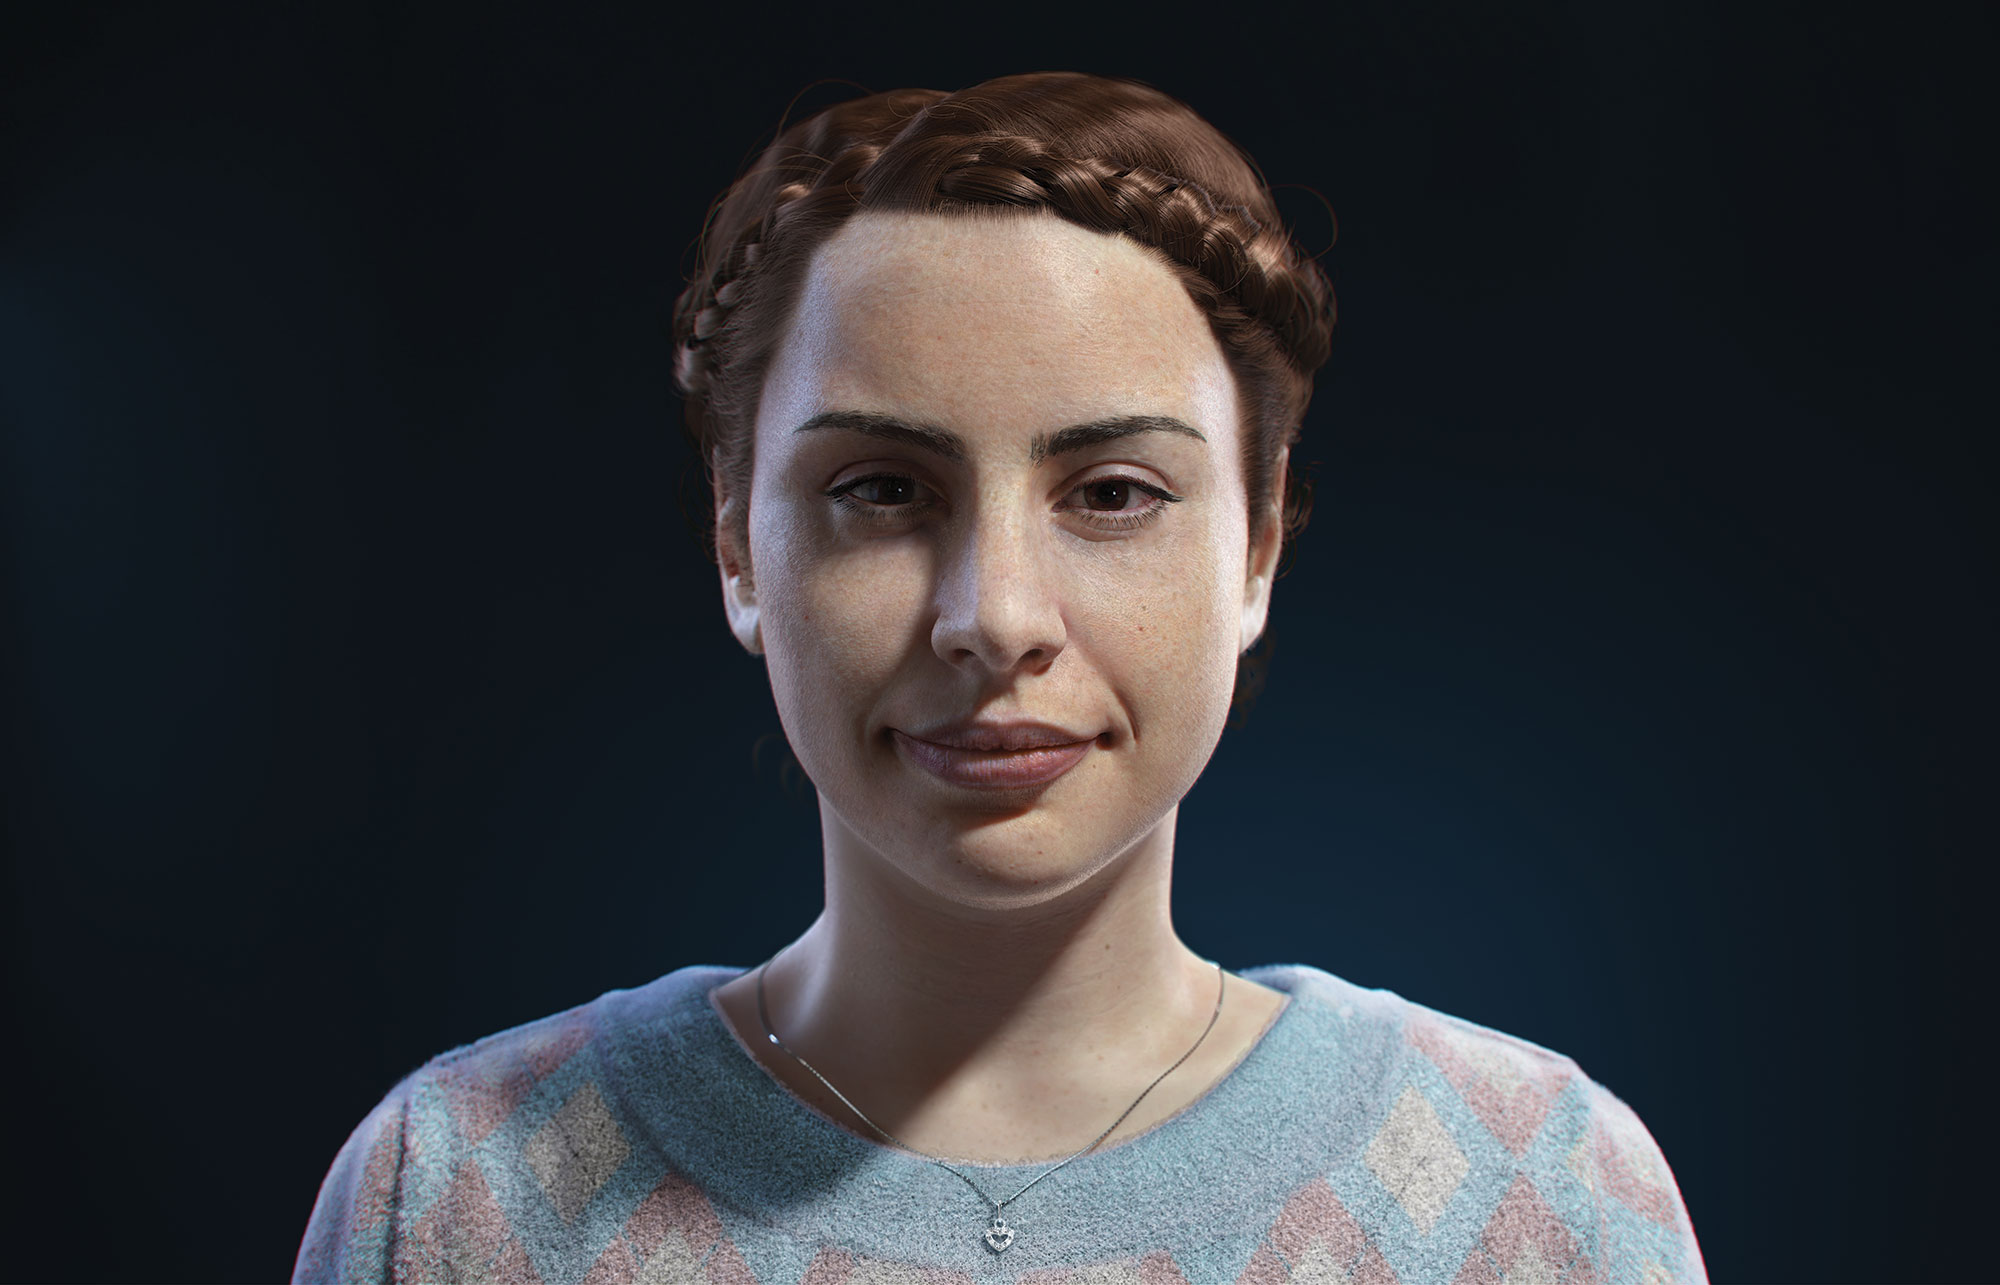 Realistic 3D portrait of a woman by João Victor Ferreira